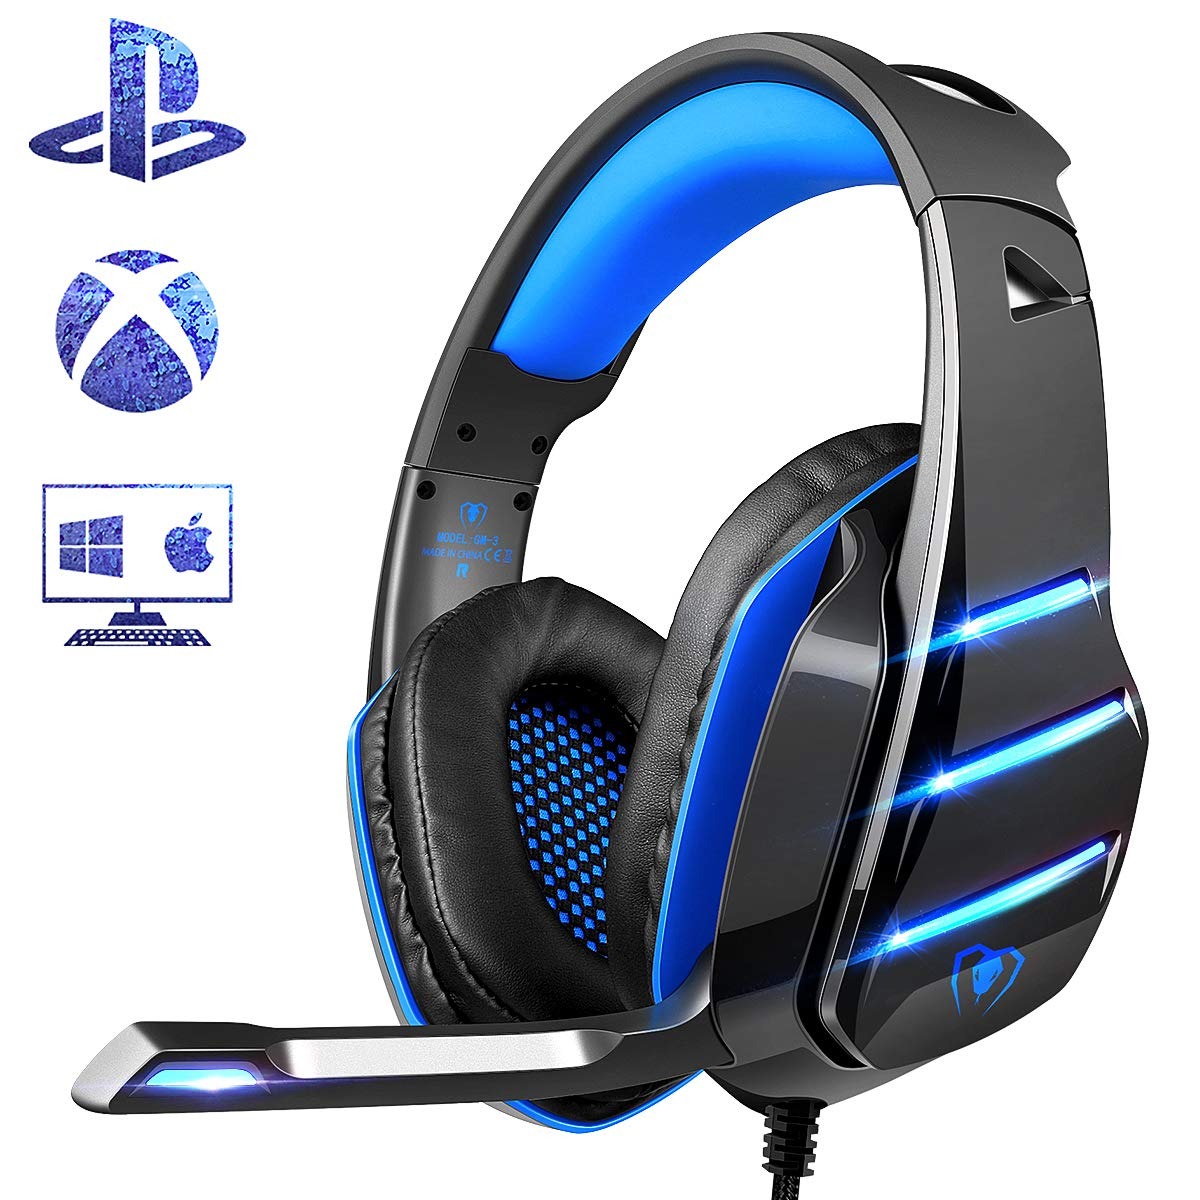 PS4 Gaming Headset with Mic, Beexcellent Newest Deep Bass Stereo Sound Over Ear Headphone with Noise Isolation LED Light for PC Laptop Tablet Mac (Blue) by Beexcellent